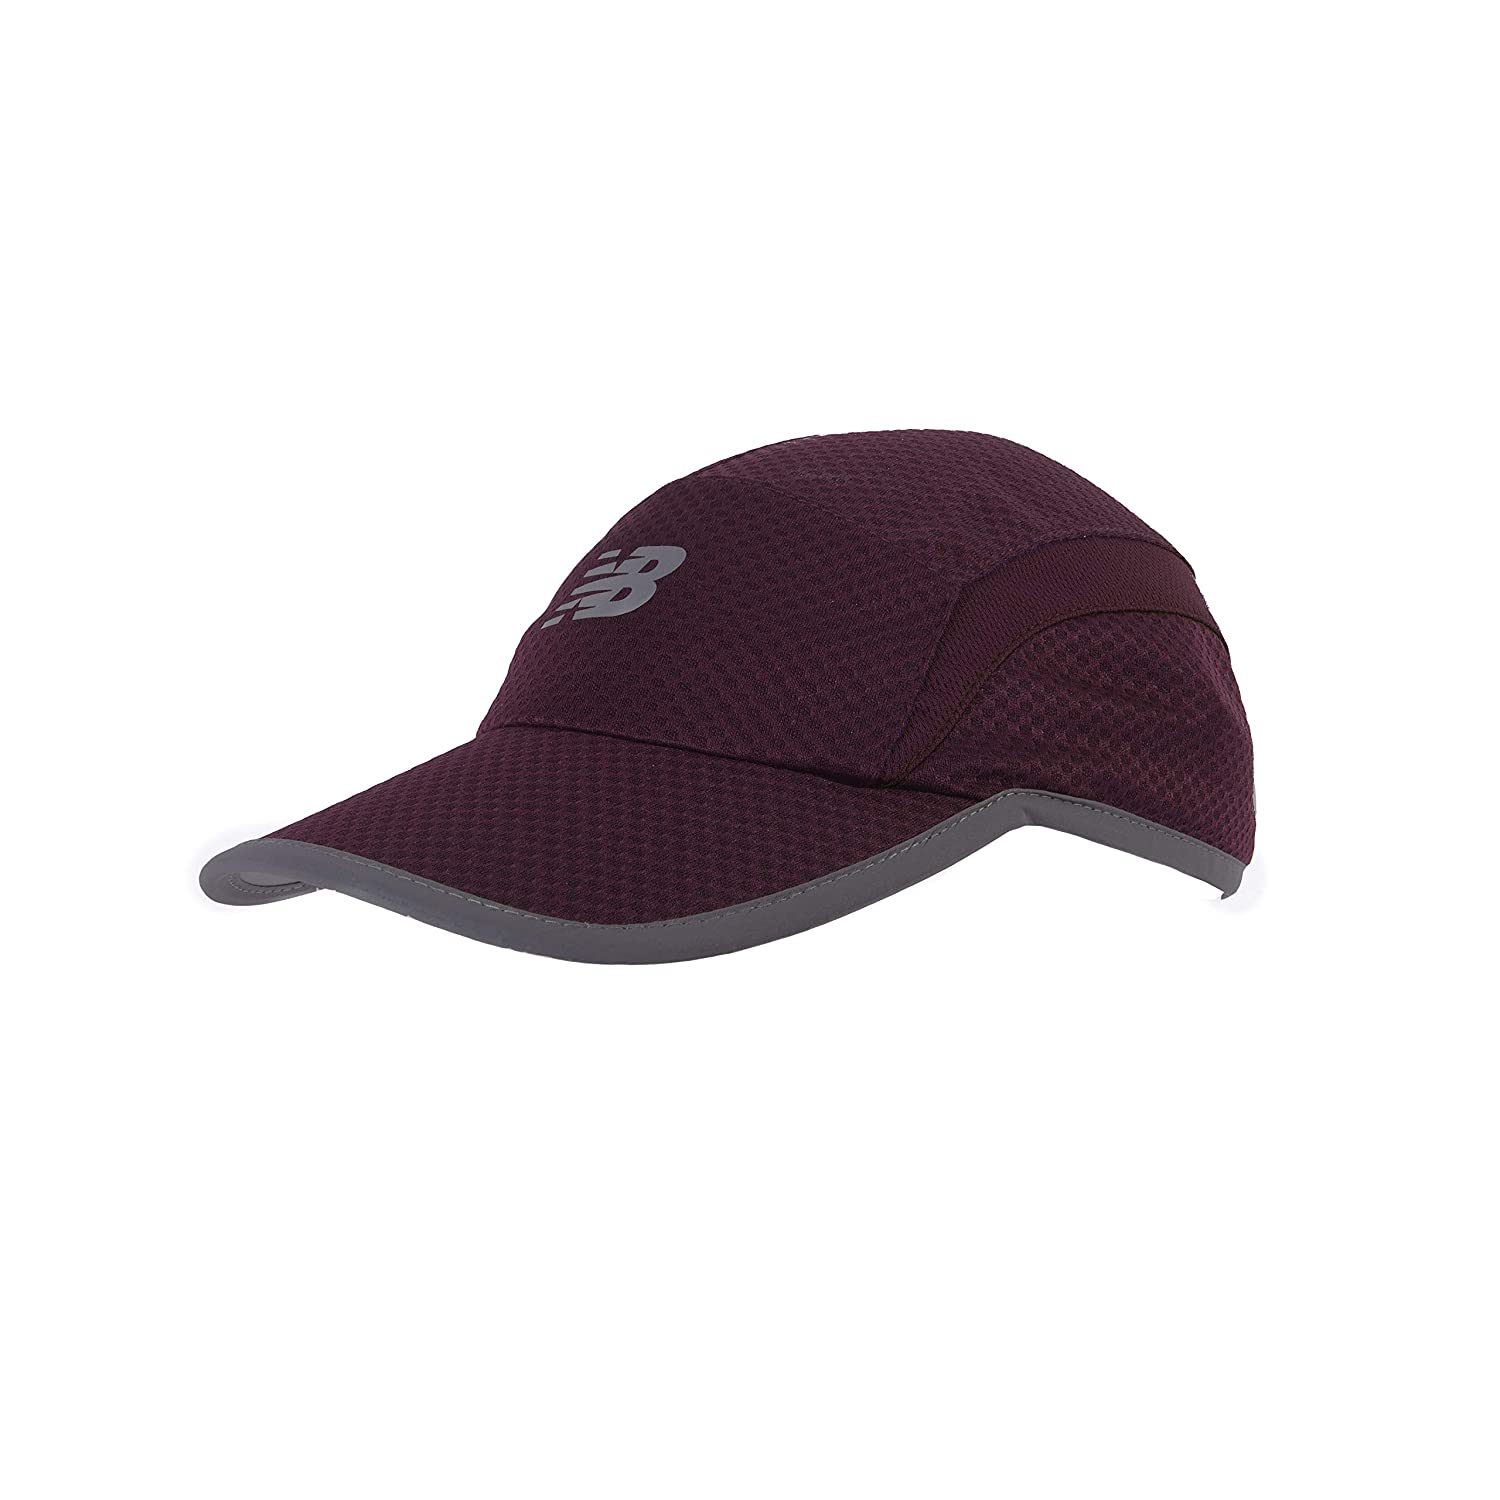 New Balance 5 Panel Performance Hat One Size Nb Burgundy